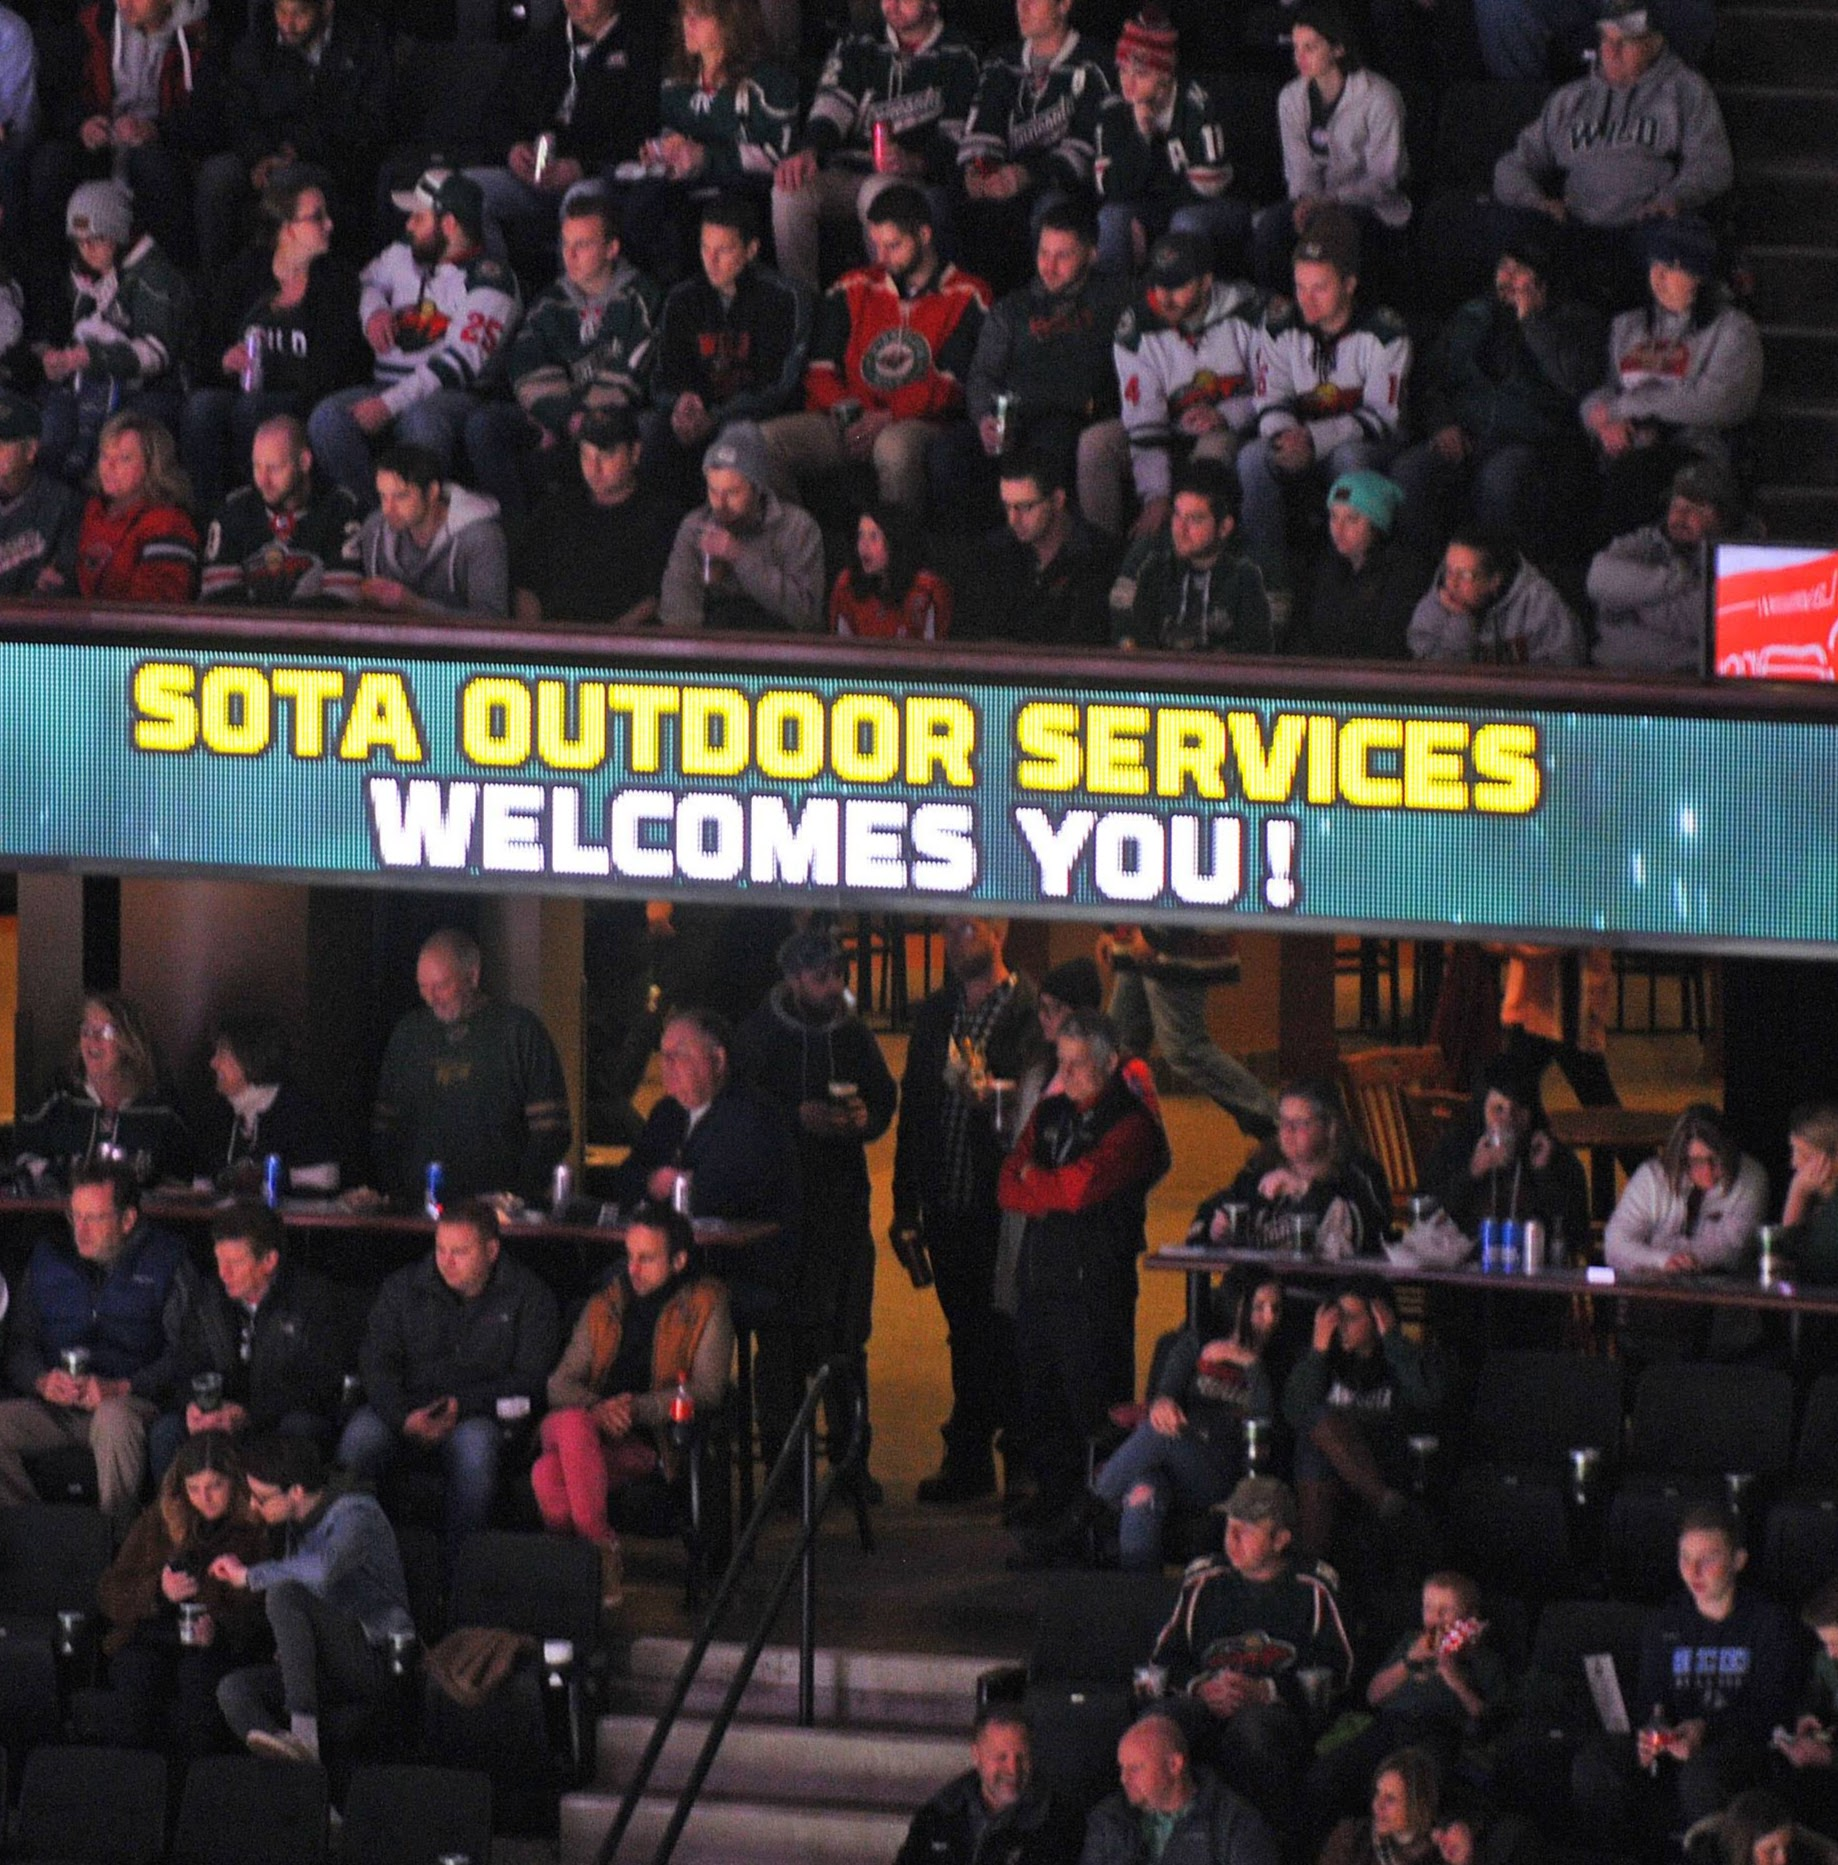 Sota Outdoor Services